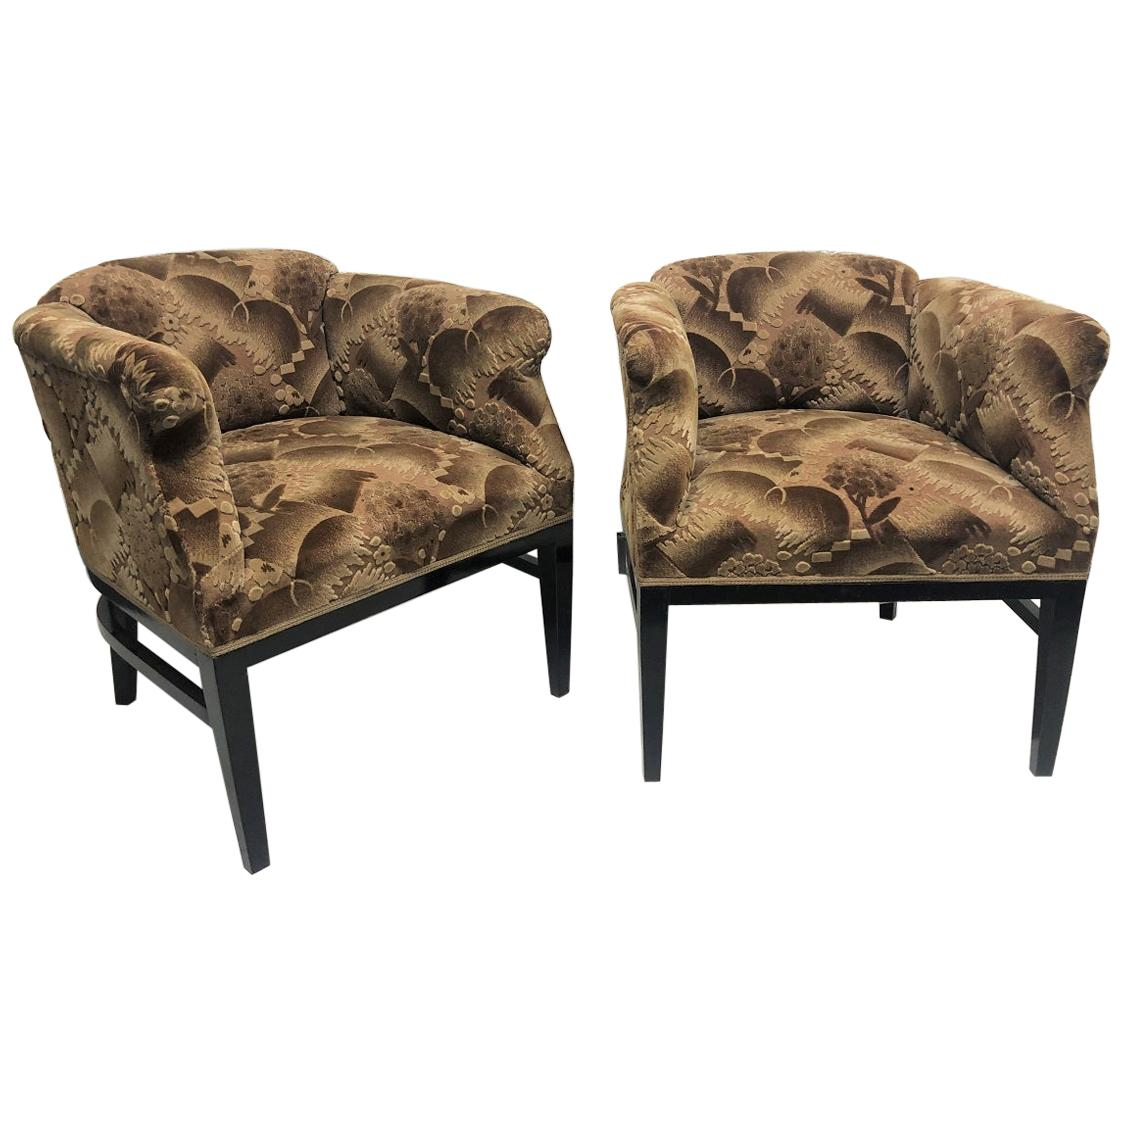 Pair of 1940s Art Deco Lounge Chairs